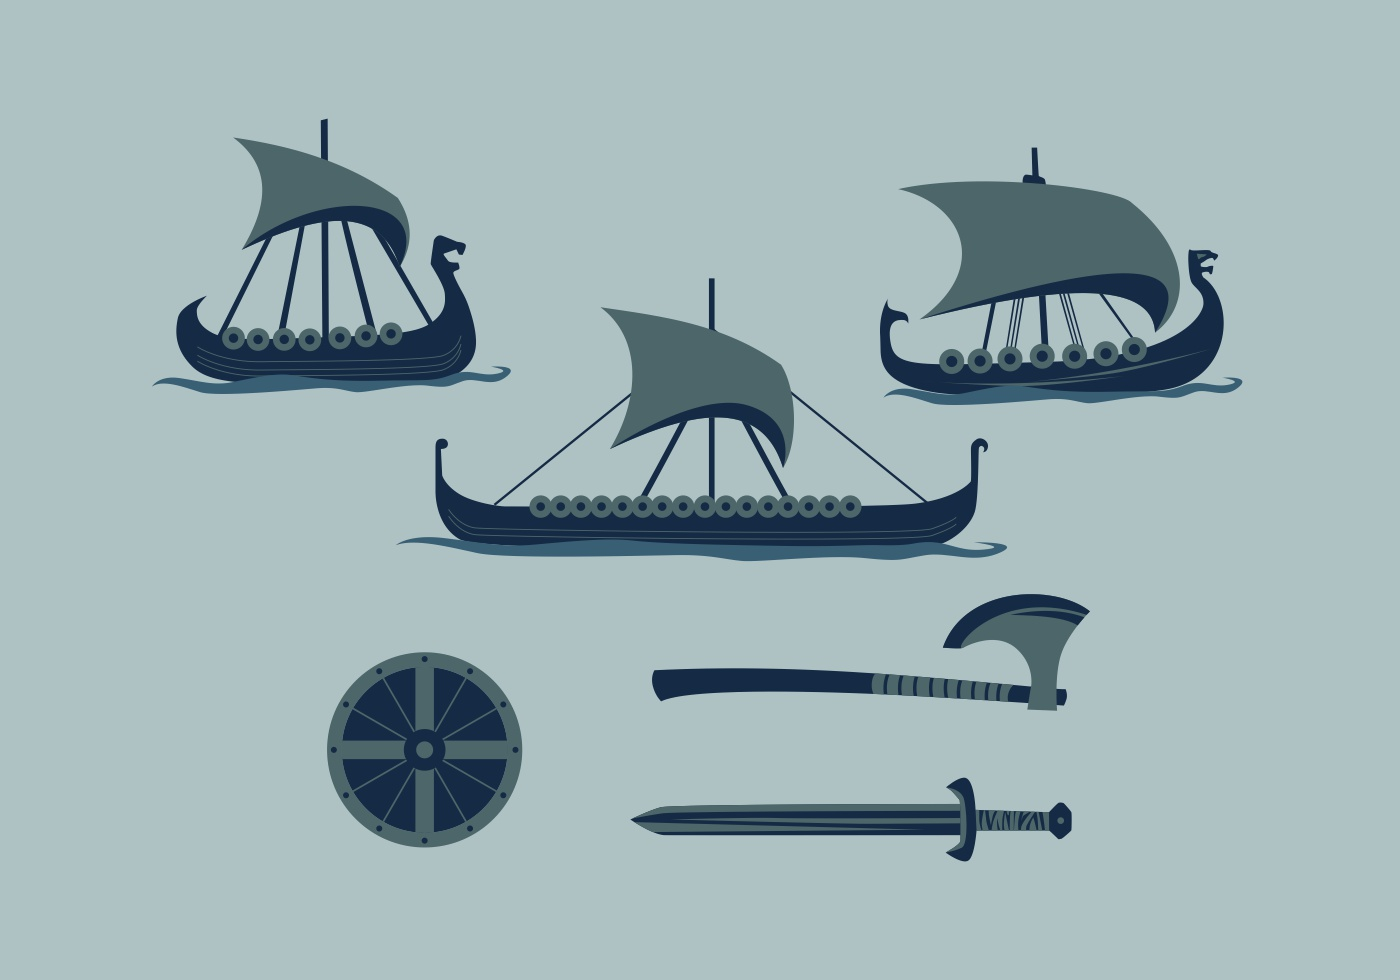 FREE VIKING SHIP 2 VECTOR - Download Free Vector Art ...